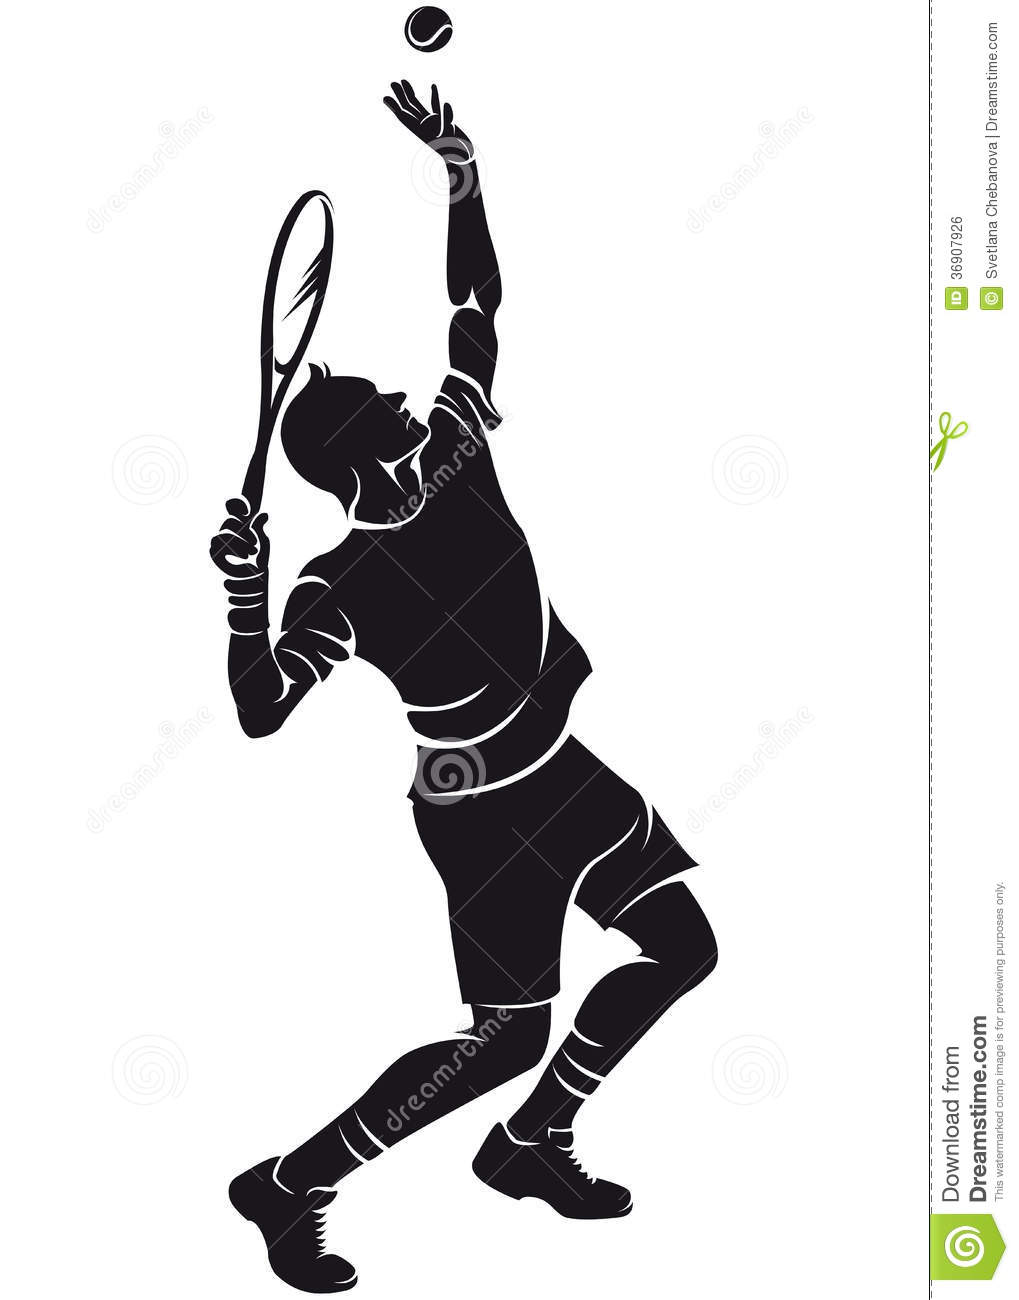 Royalty Free Stock Image Tennis Player Silhouette Isolated White Image36907926 on ping pong racket